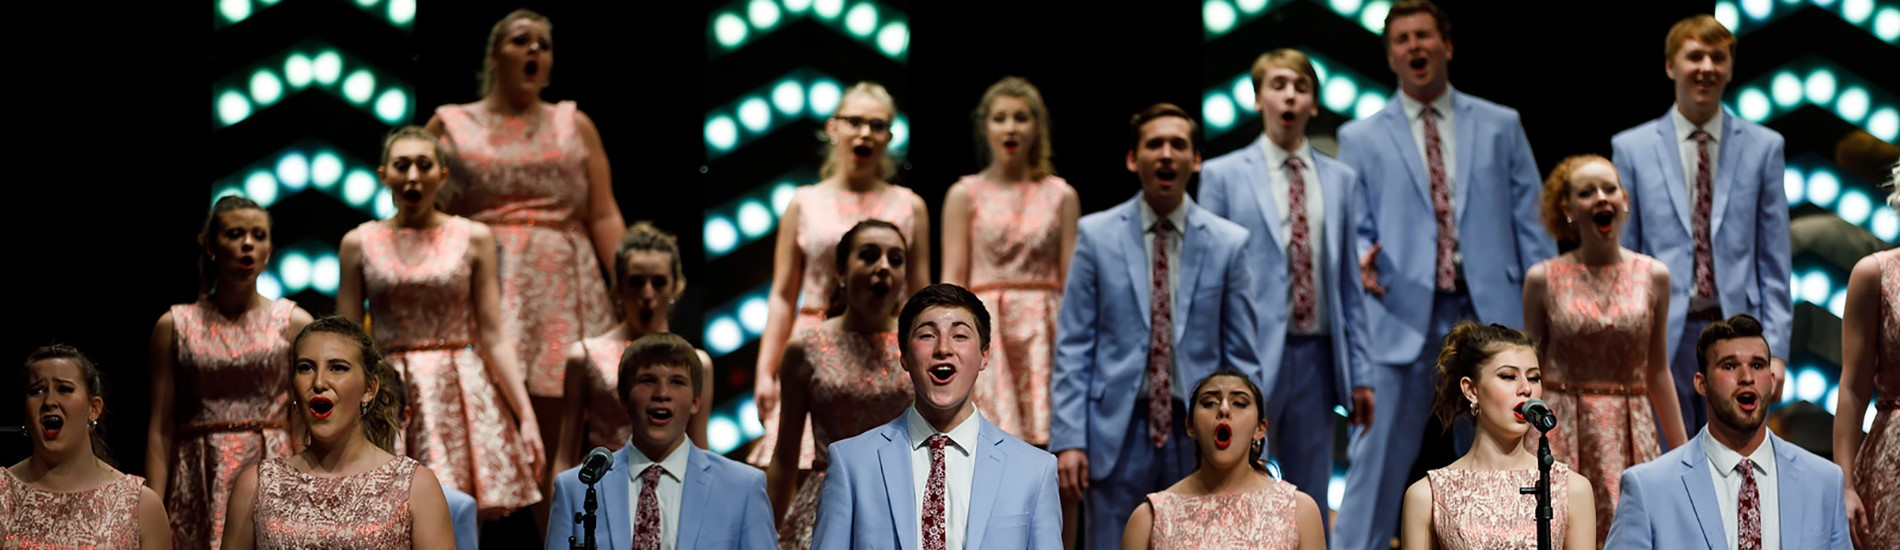 Ross Legacy Show Choir